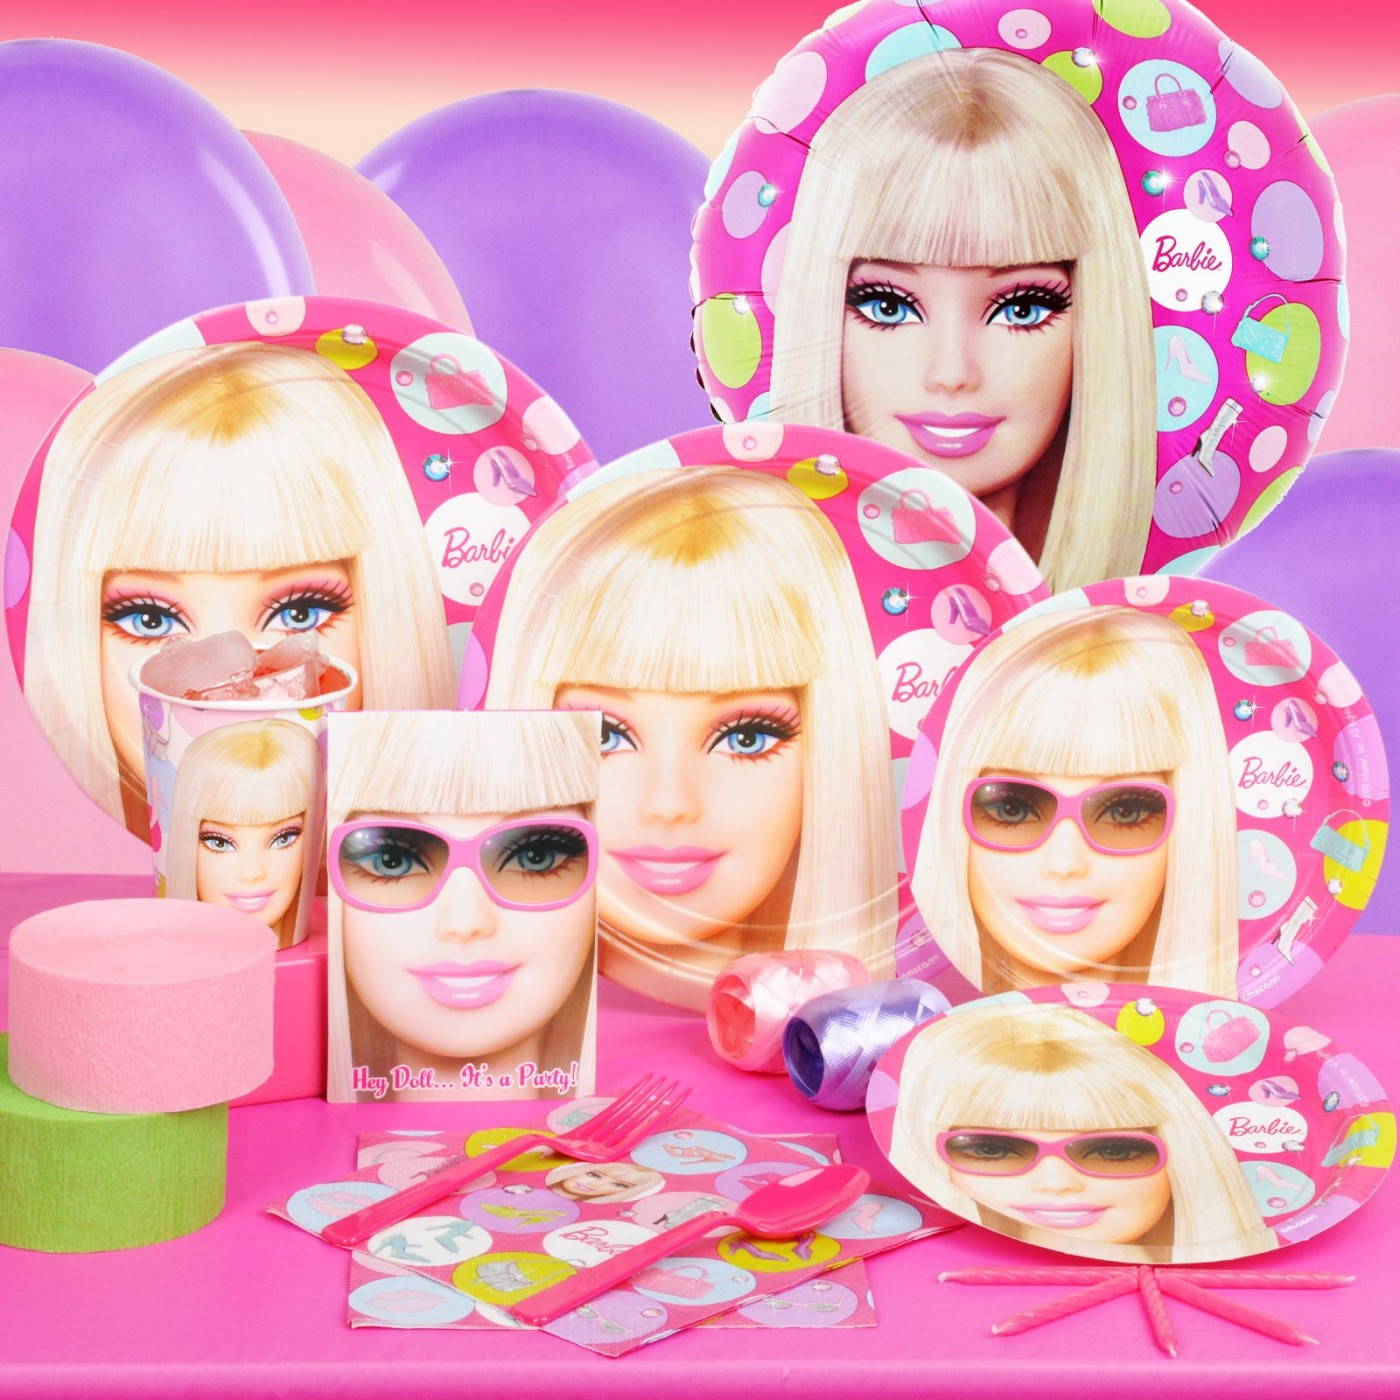 Barbie All Dolled Up Party Supplies